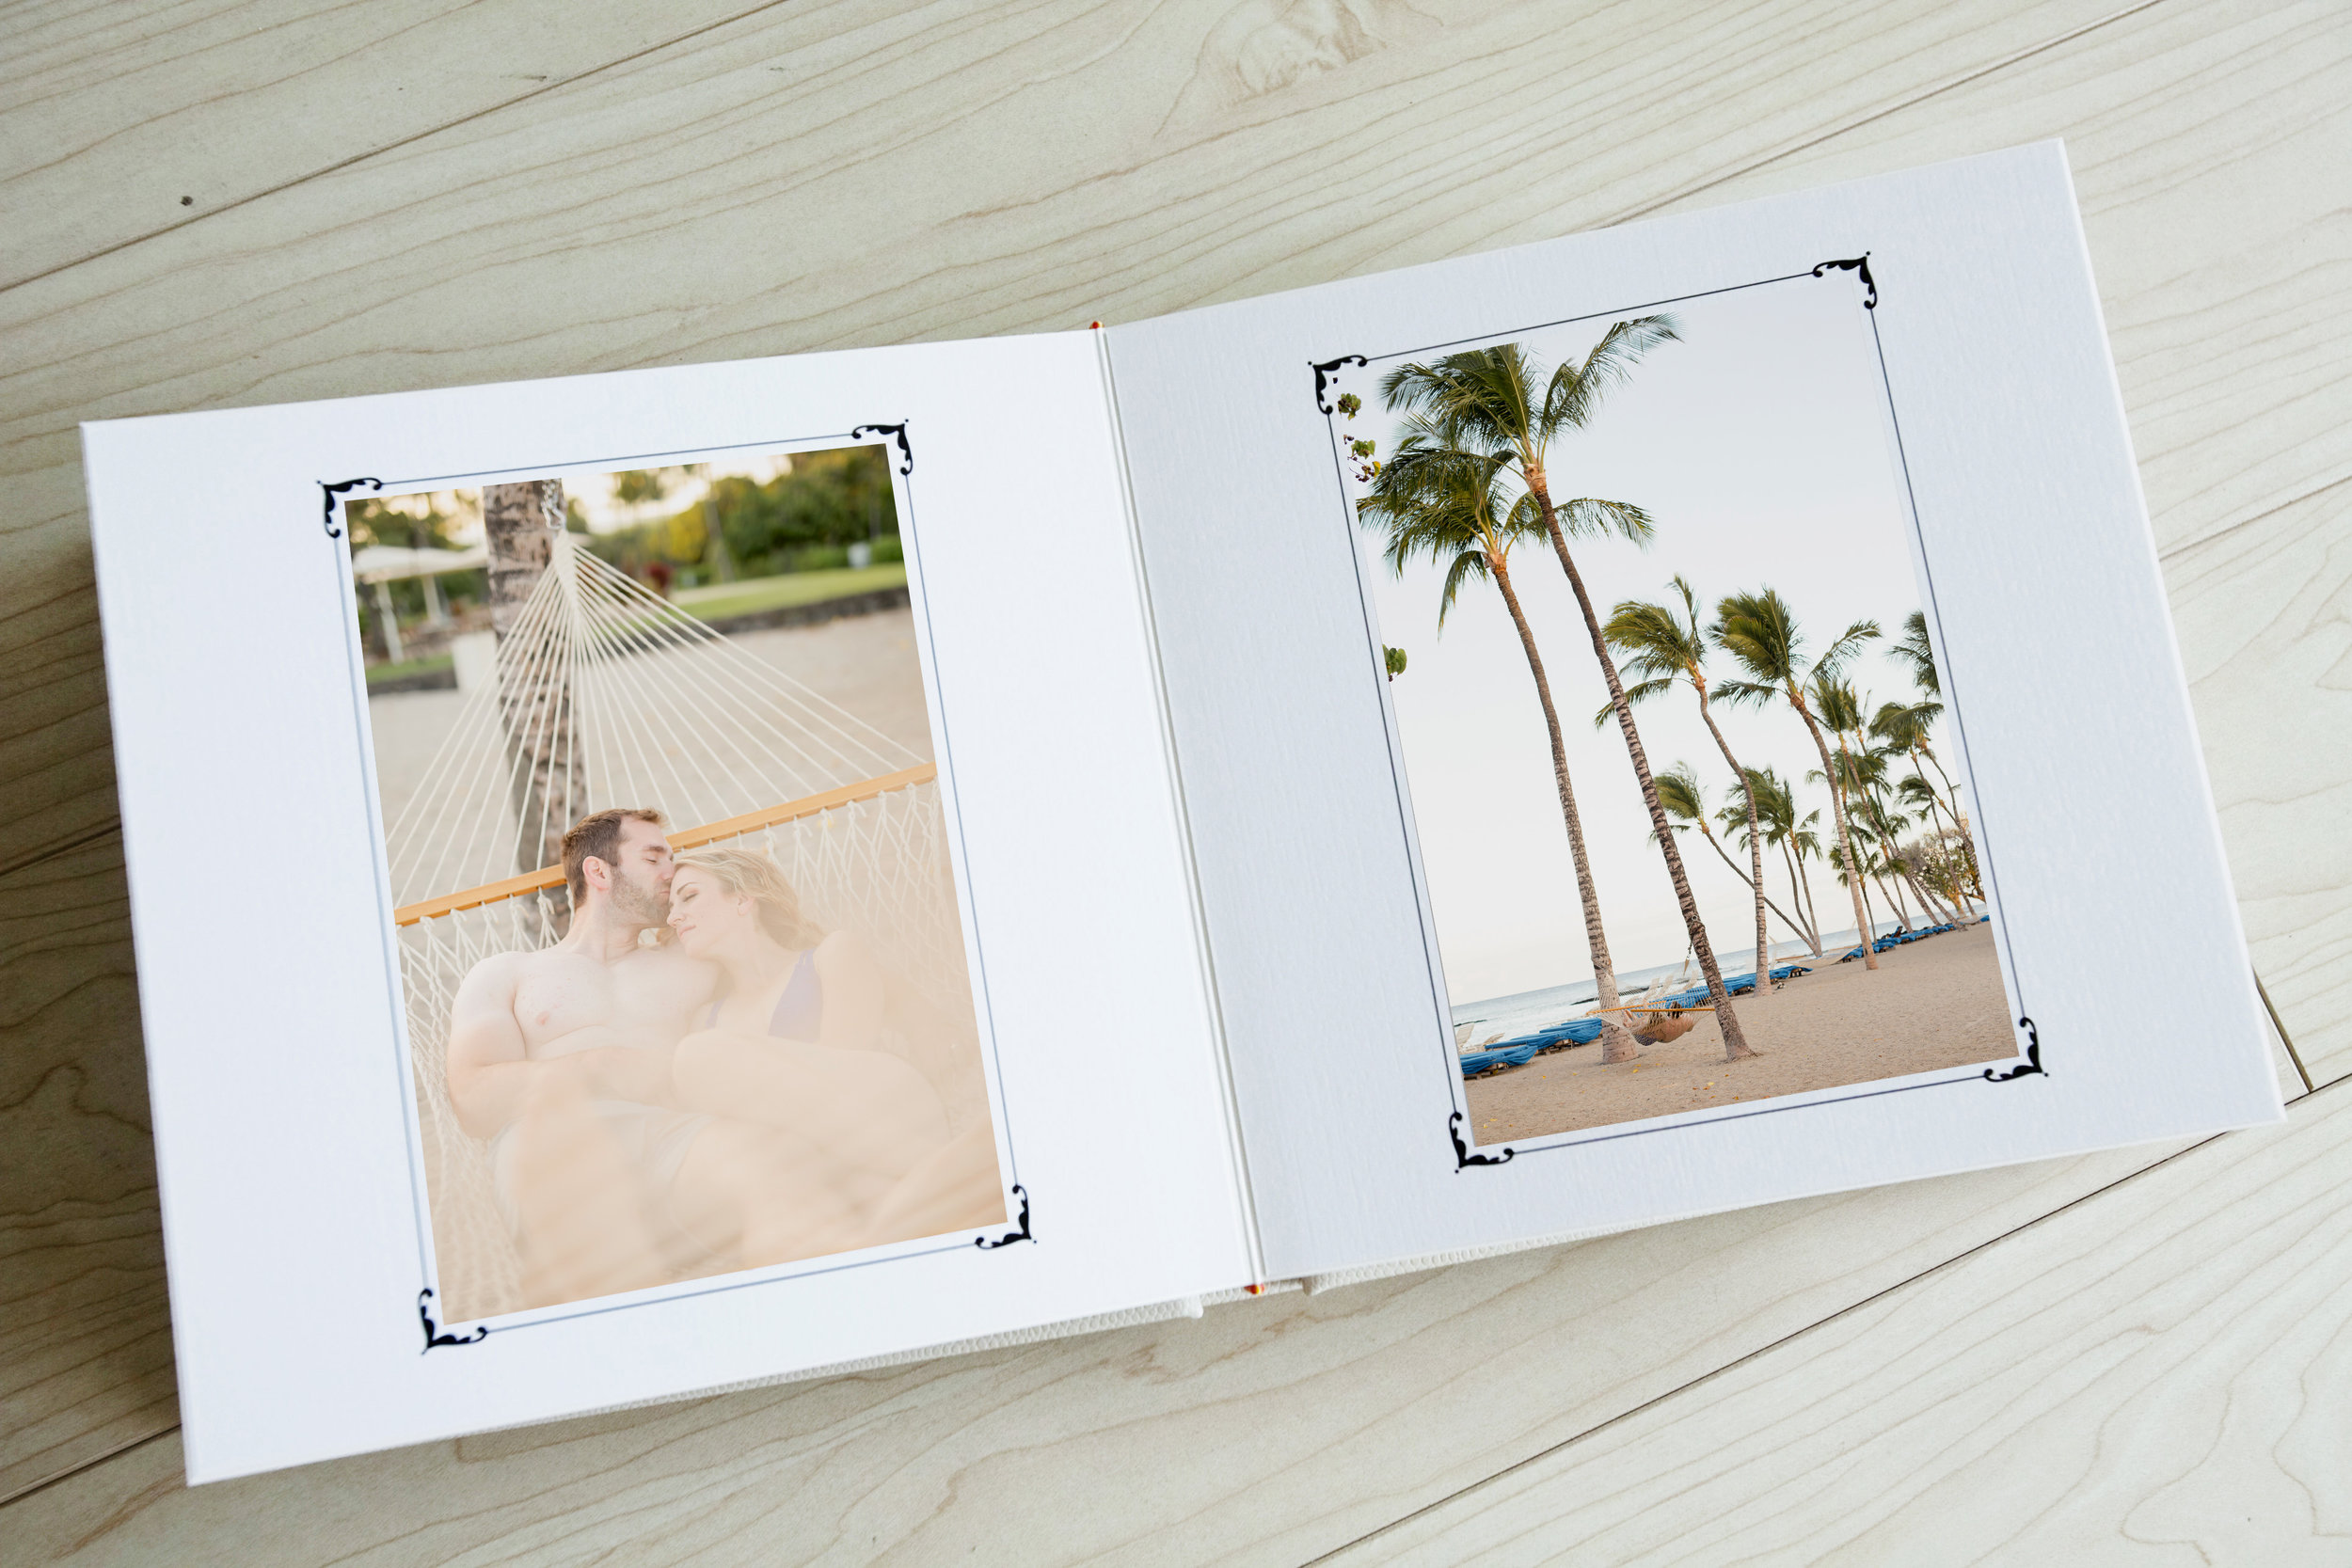 This is our Legacy album, a stunning 10x10in bespoke album - The ultimate family heirloom!